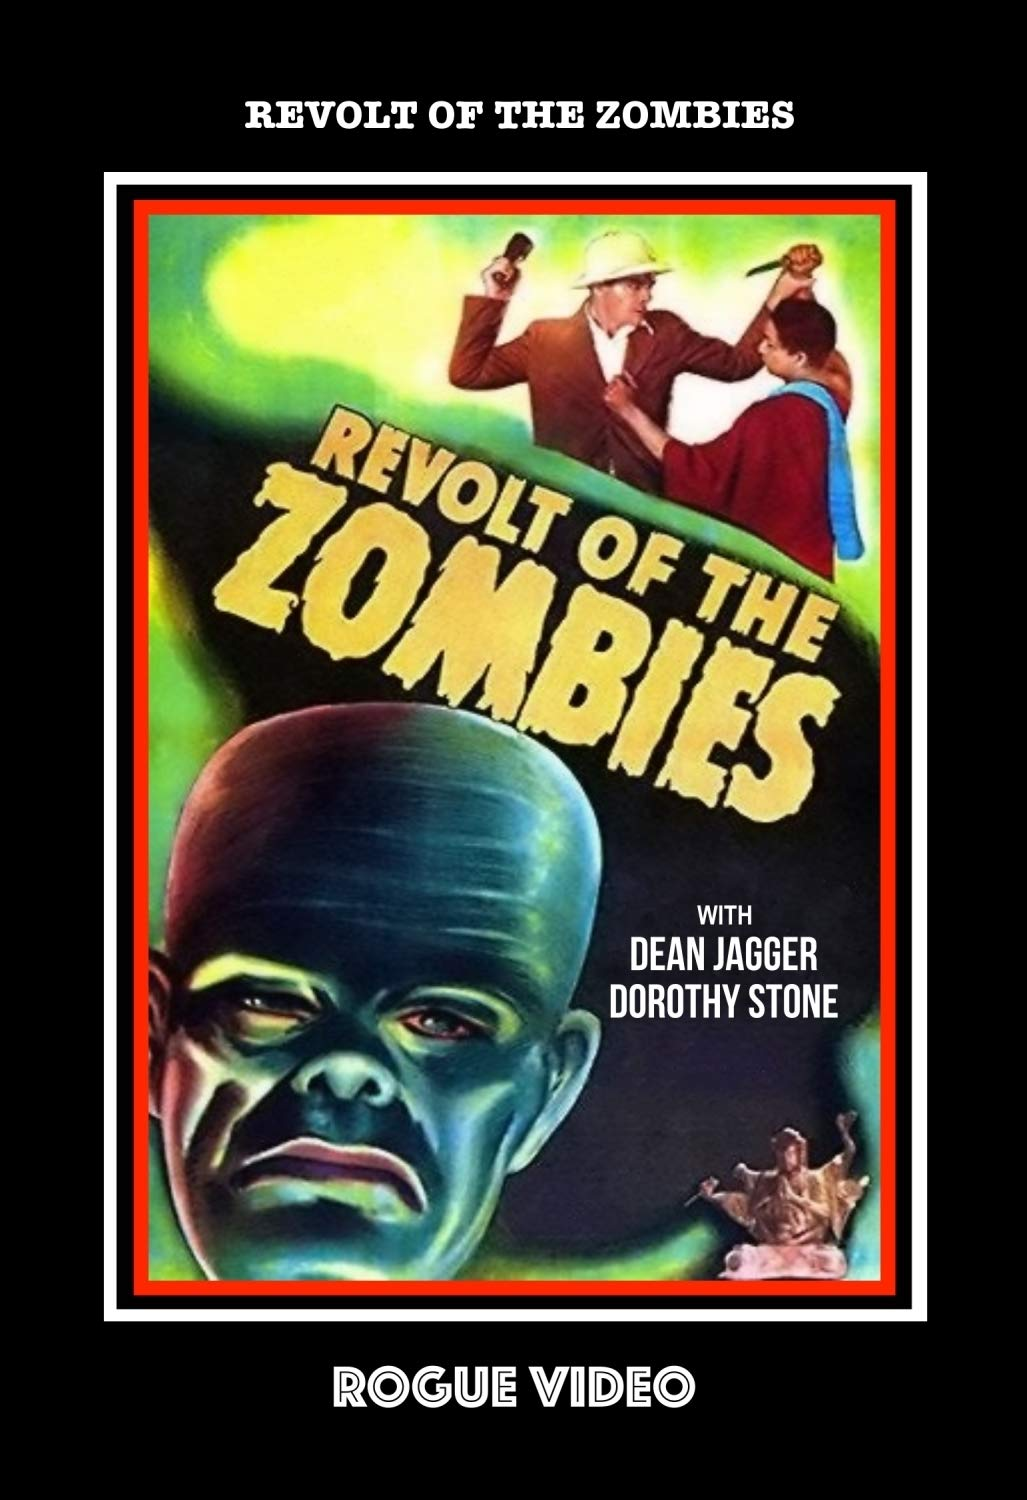 REVOLT OF THE ZOMBIES (1936)